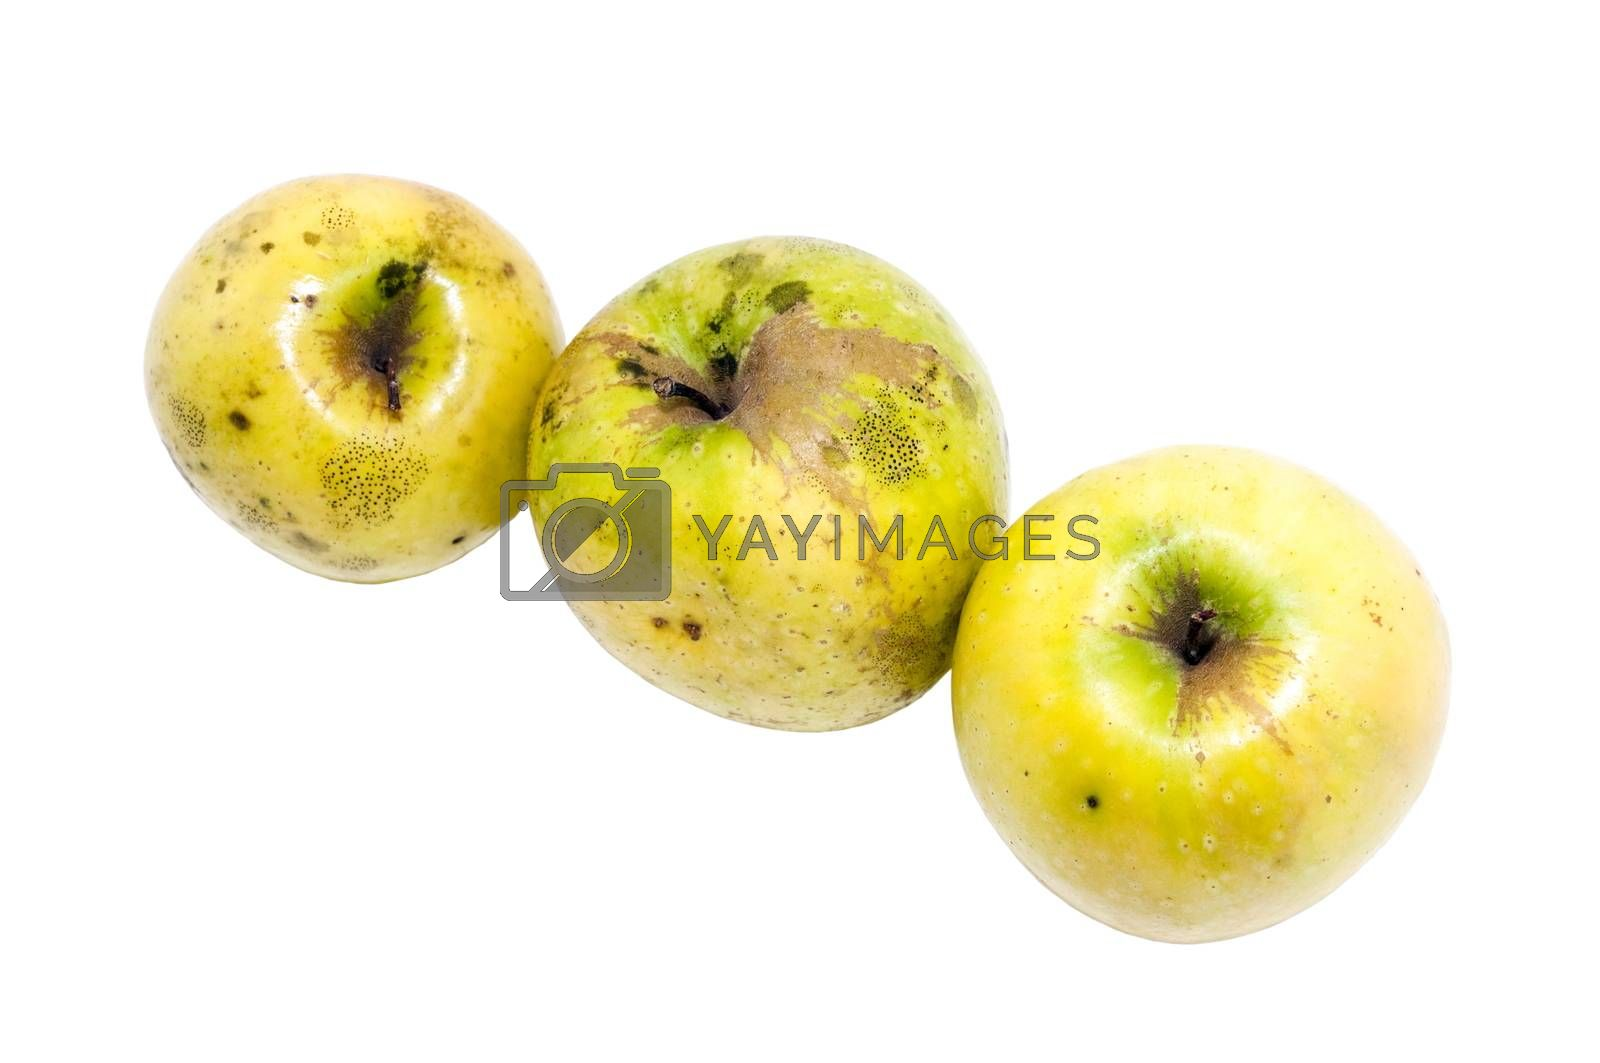 three yellow organic apples on a white background